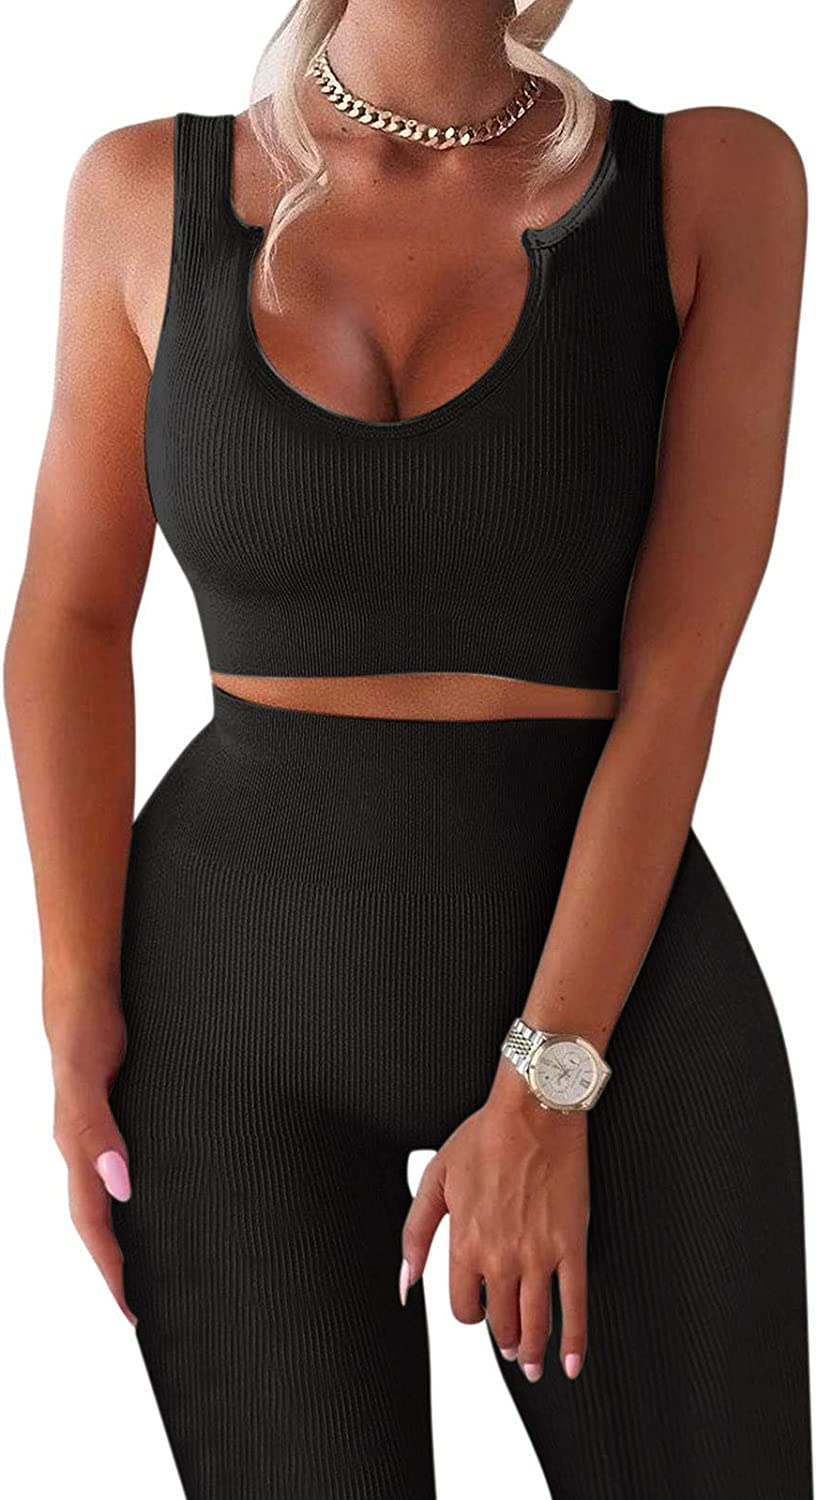 Workout Sets for All stores are sold Women 2 Piece Waist To Cropped Tank Factory outlet Ribbed High